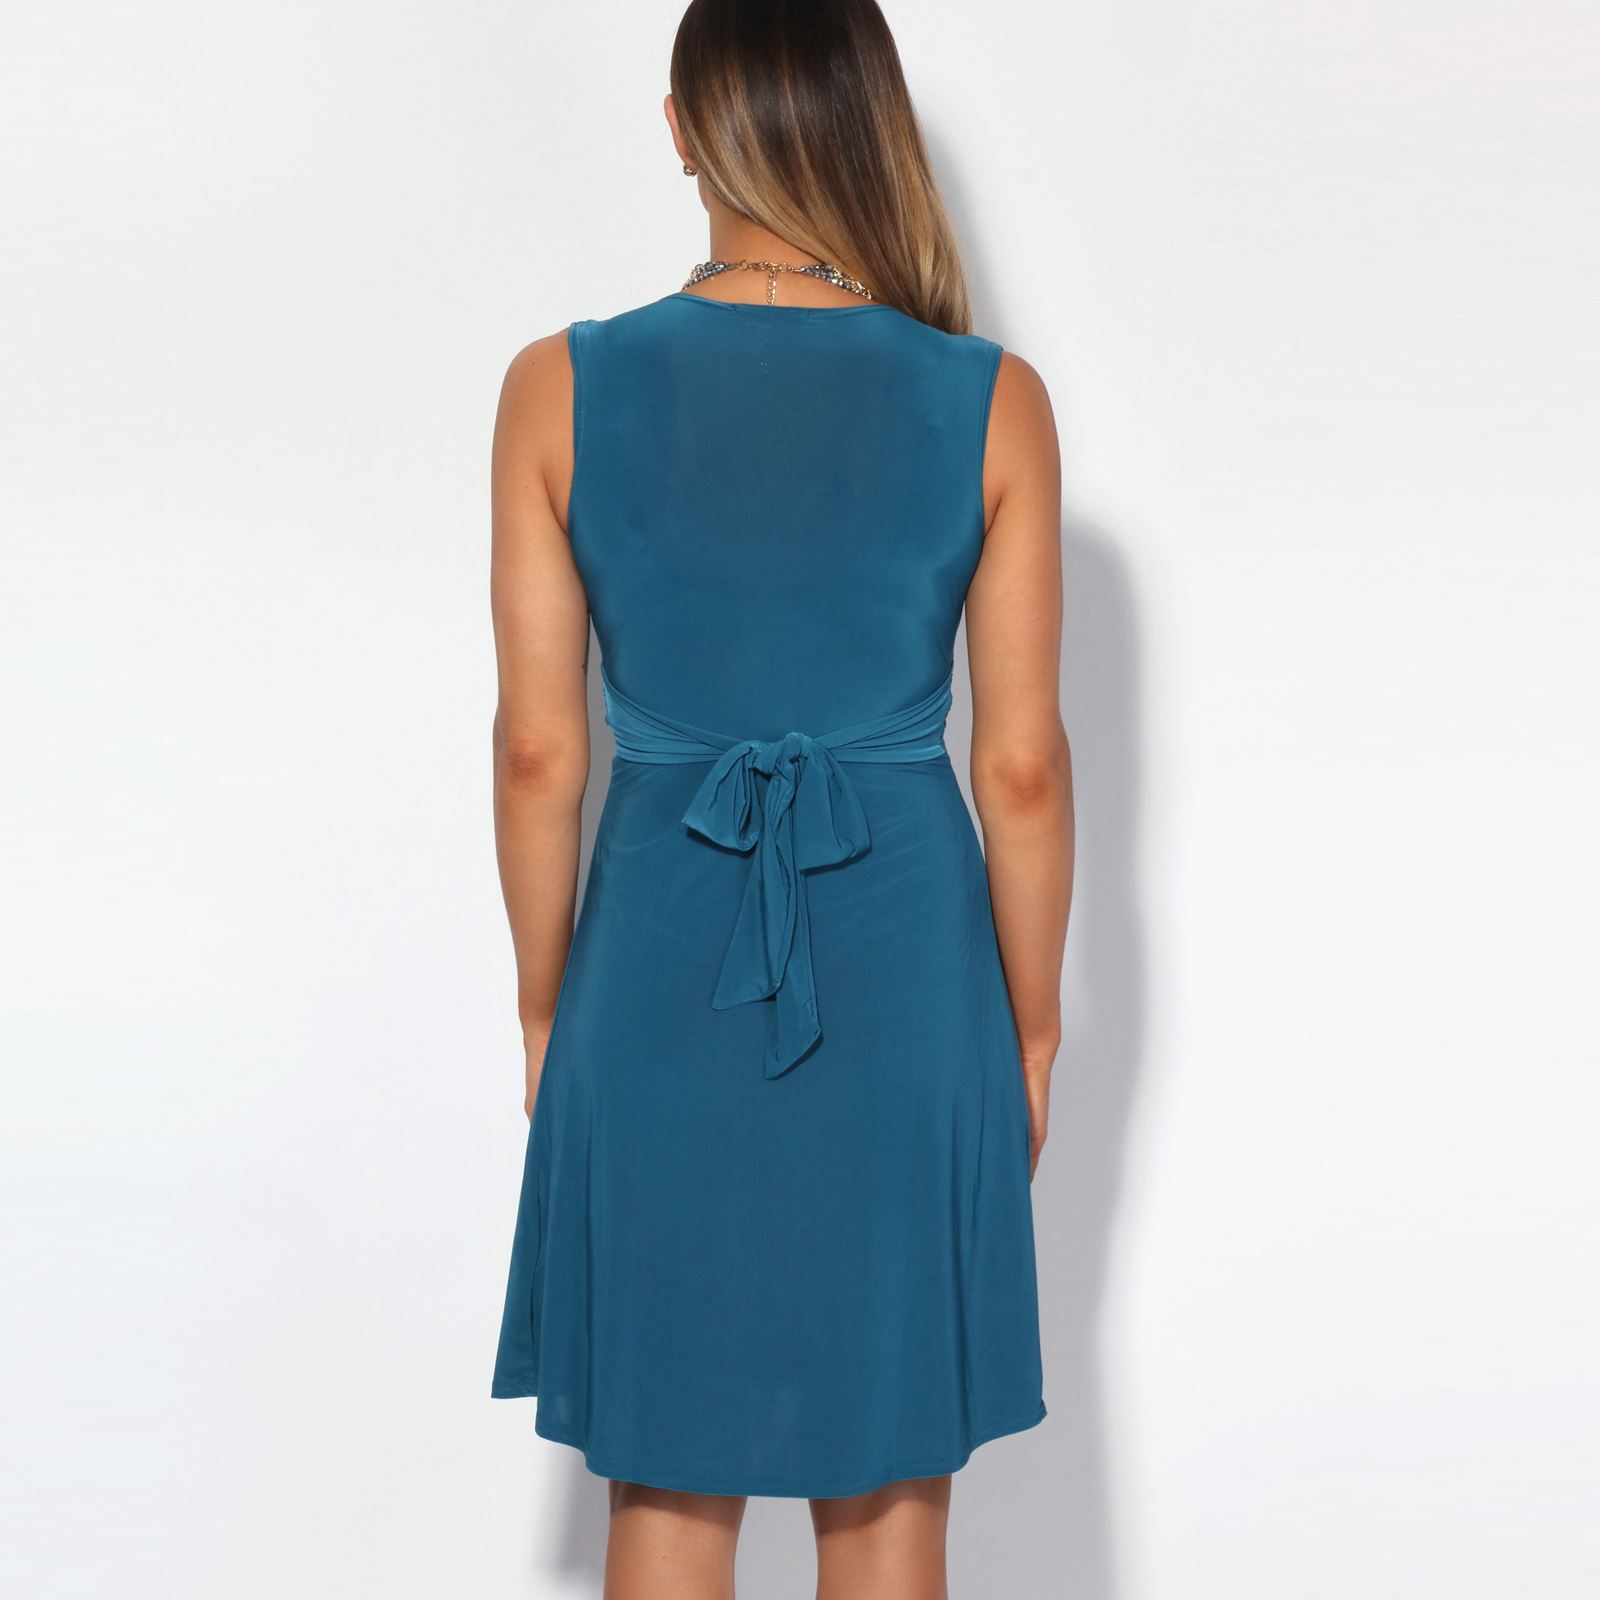 Ruched-Drape-Twist-Knot-Front-Mini-Dress-Tie-Belted-Party-Summer-Casual-Beach